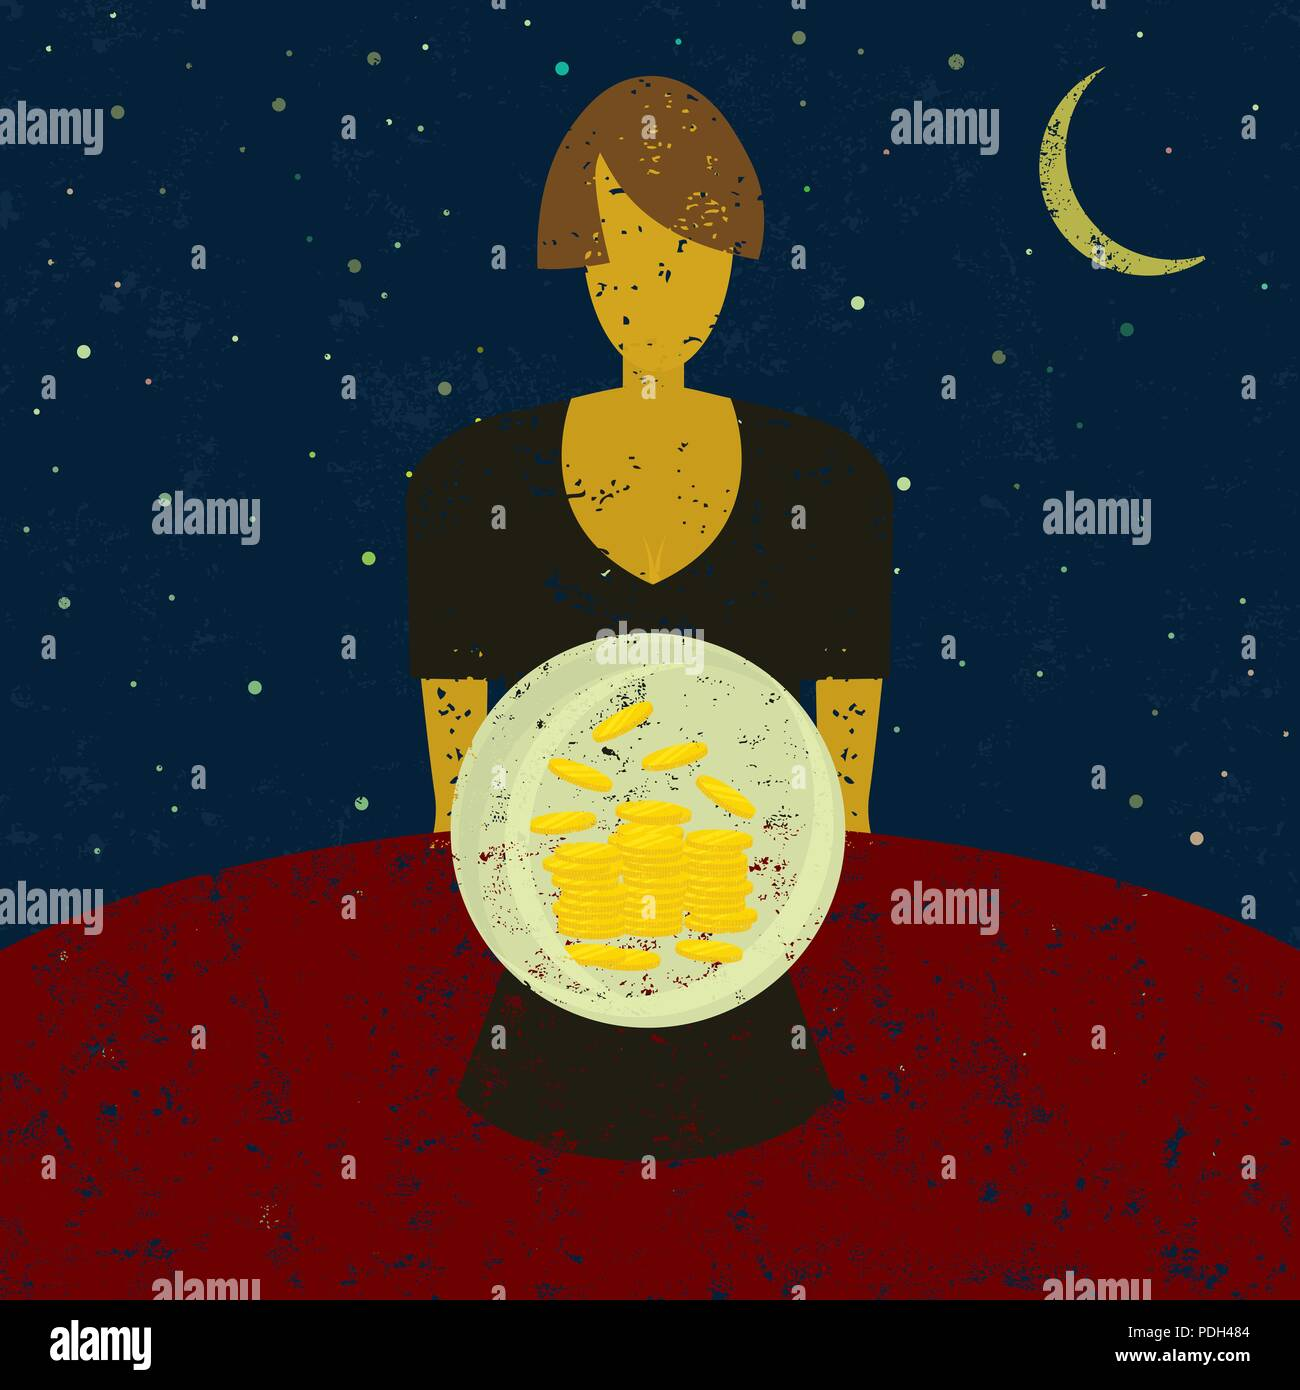 Financial Fortune Teller. A businesswoman looking into a crystal ball and seeing wealth in her future. - Stock Vector